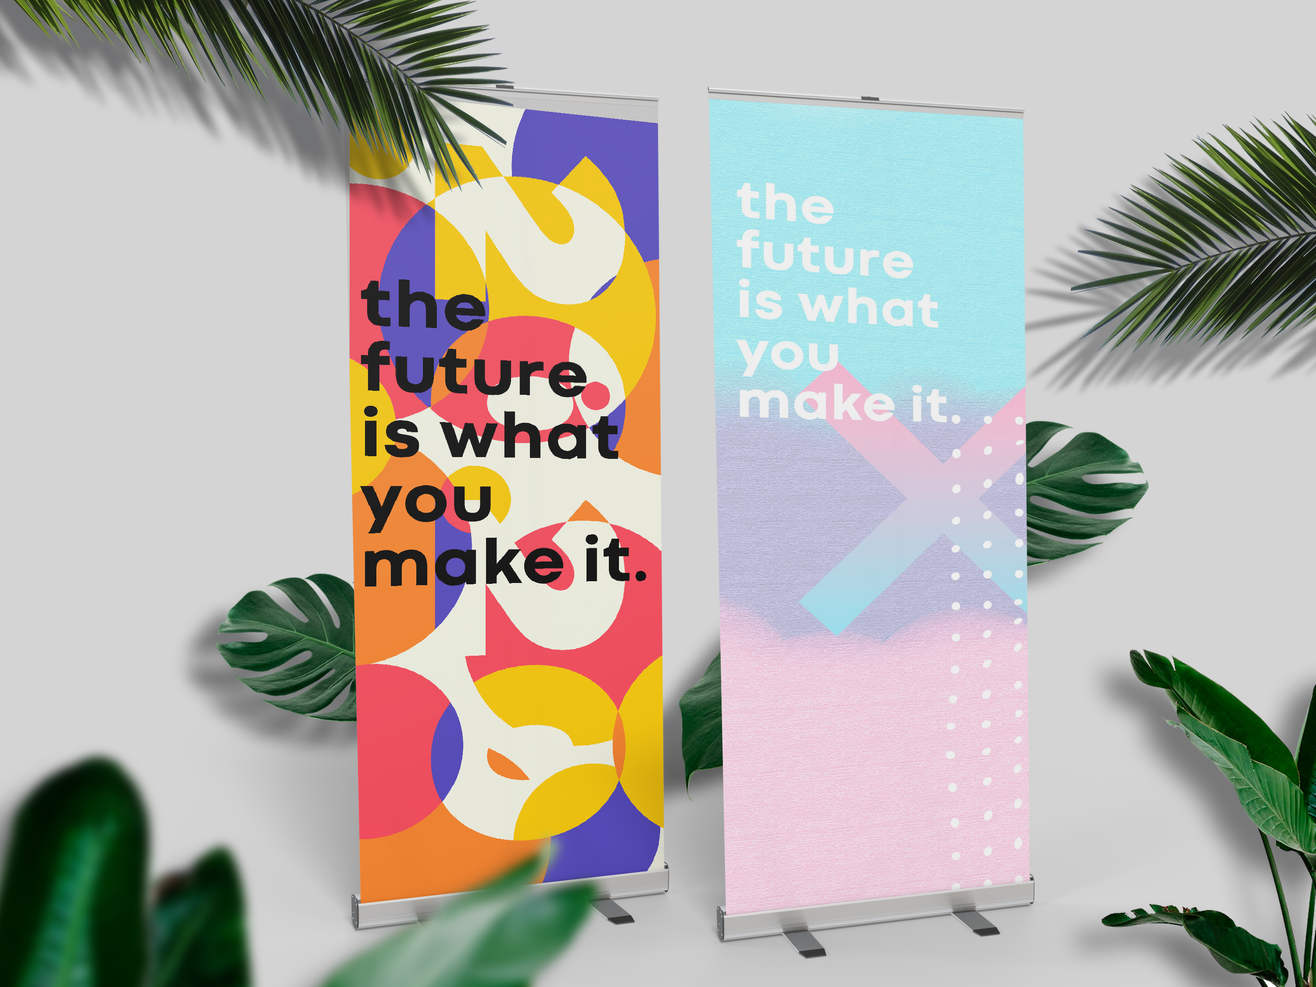 Roll Up cxcxBanner Mockup 02.jpg